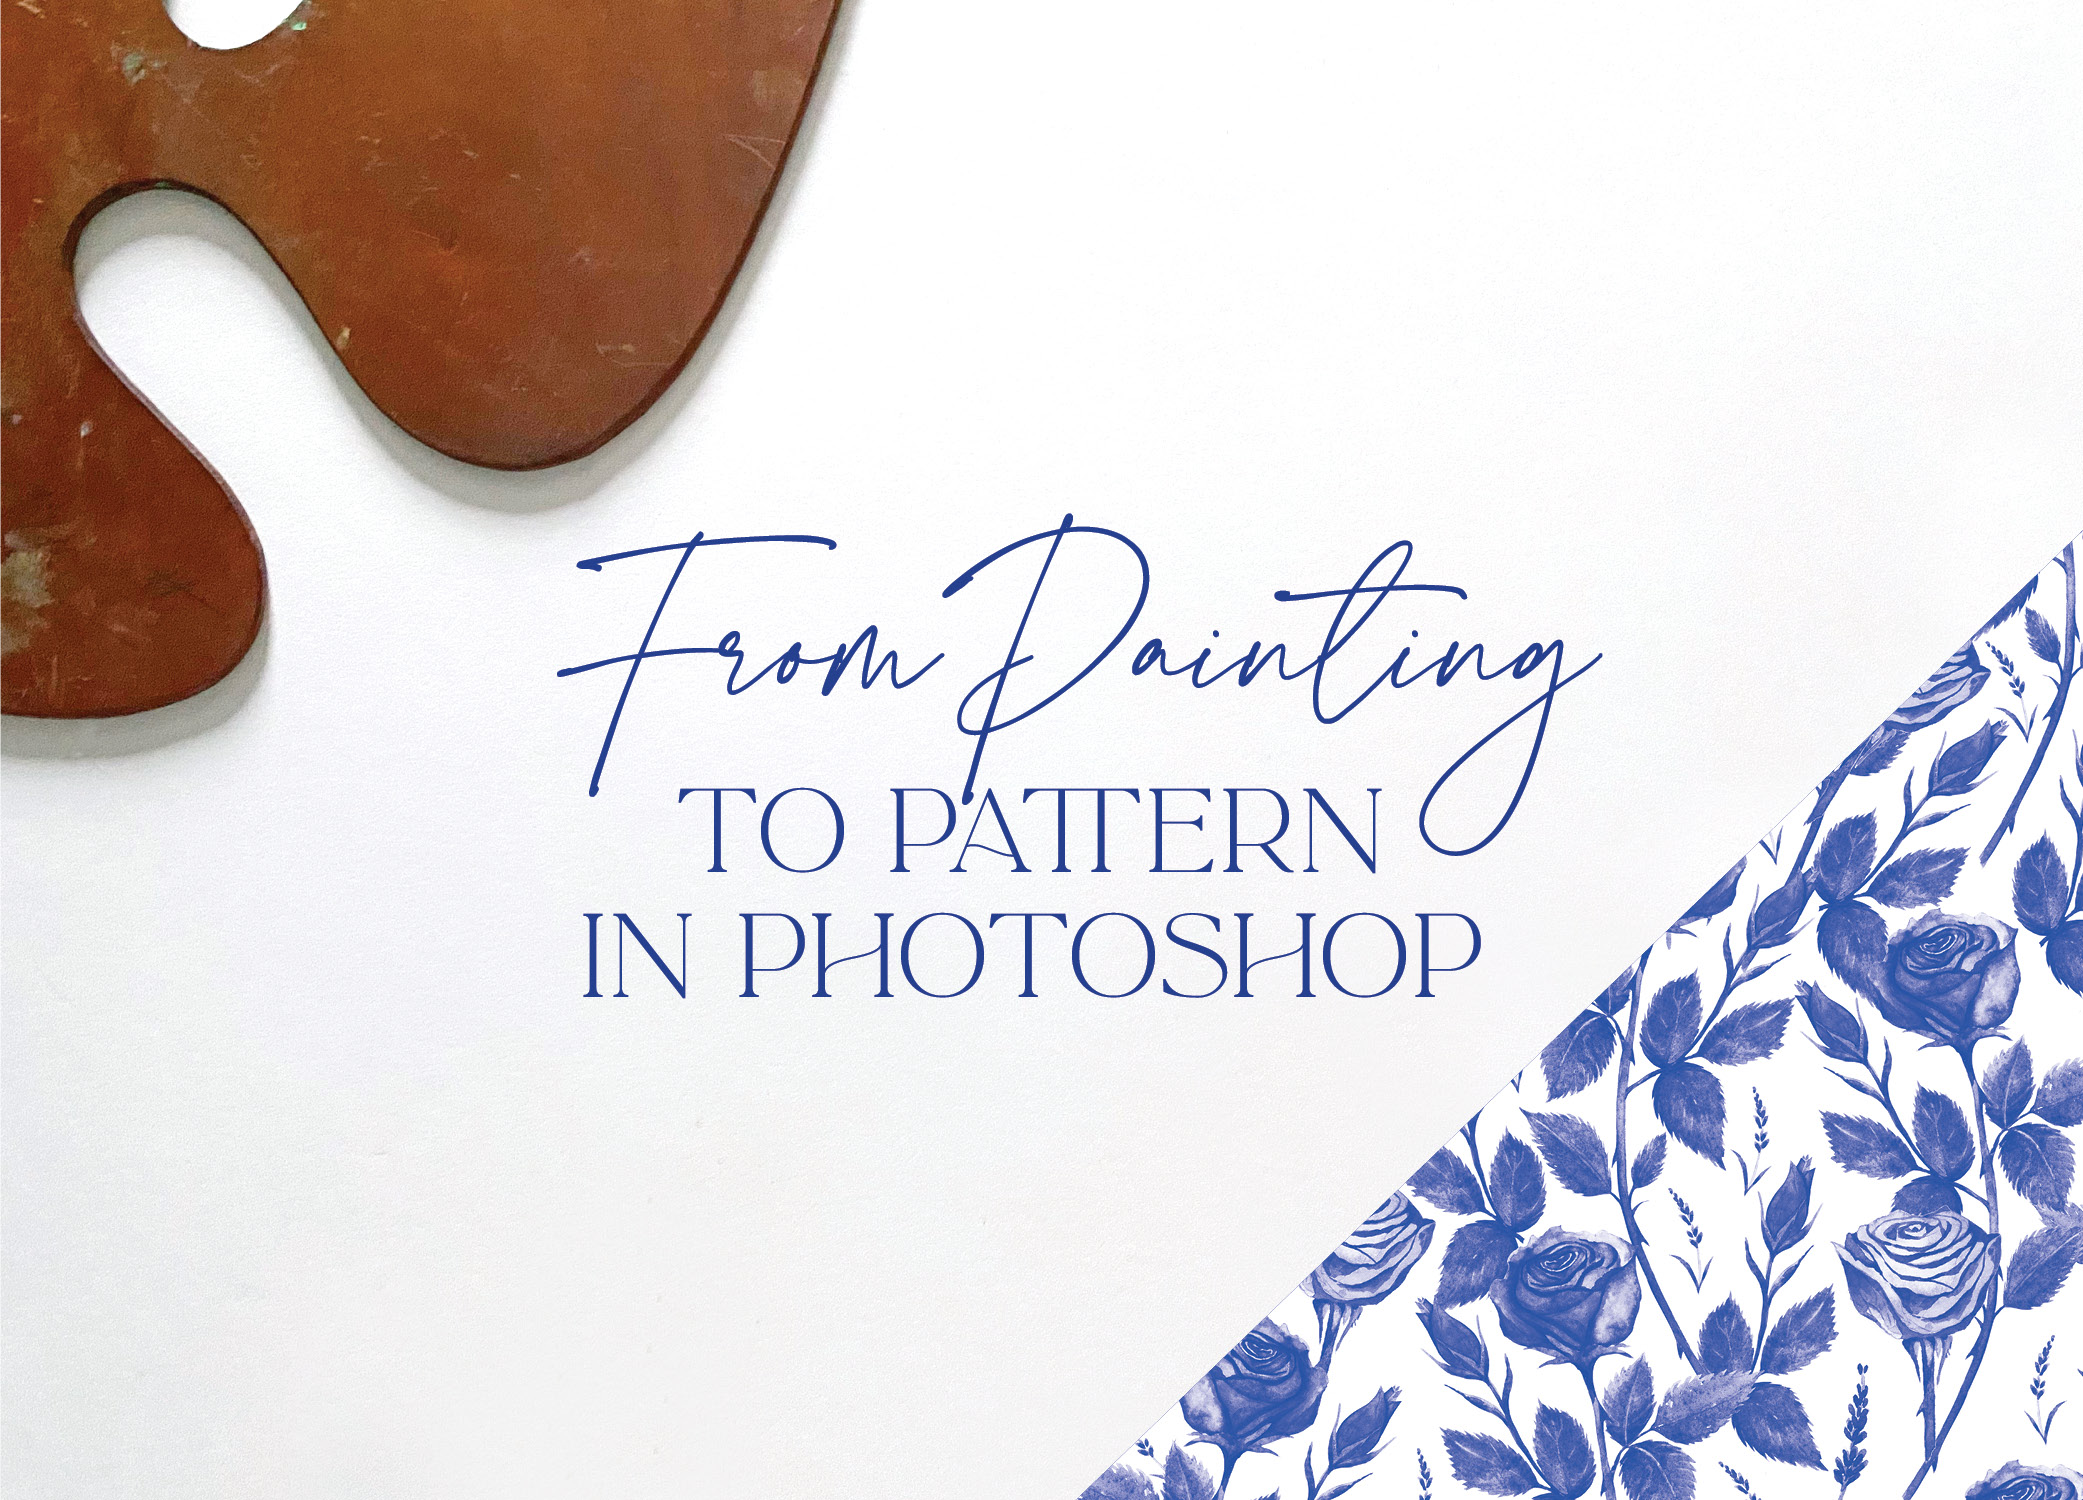 From Painting to Pattern in Adobe Photoshop